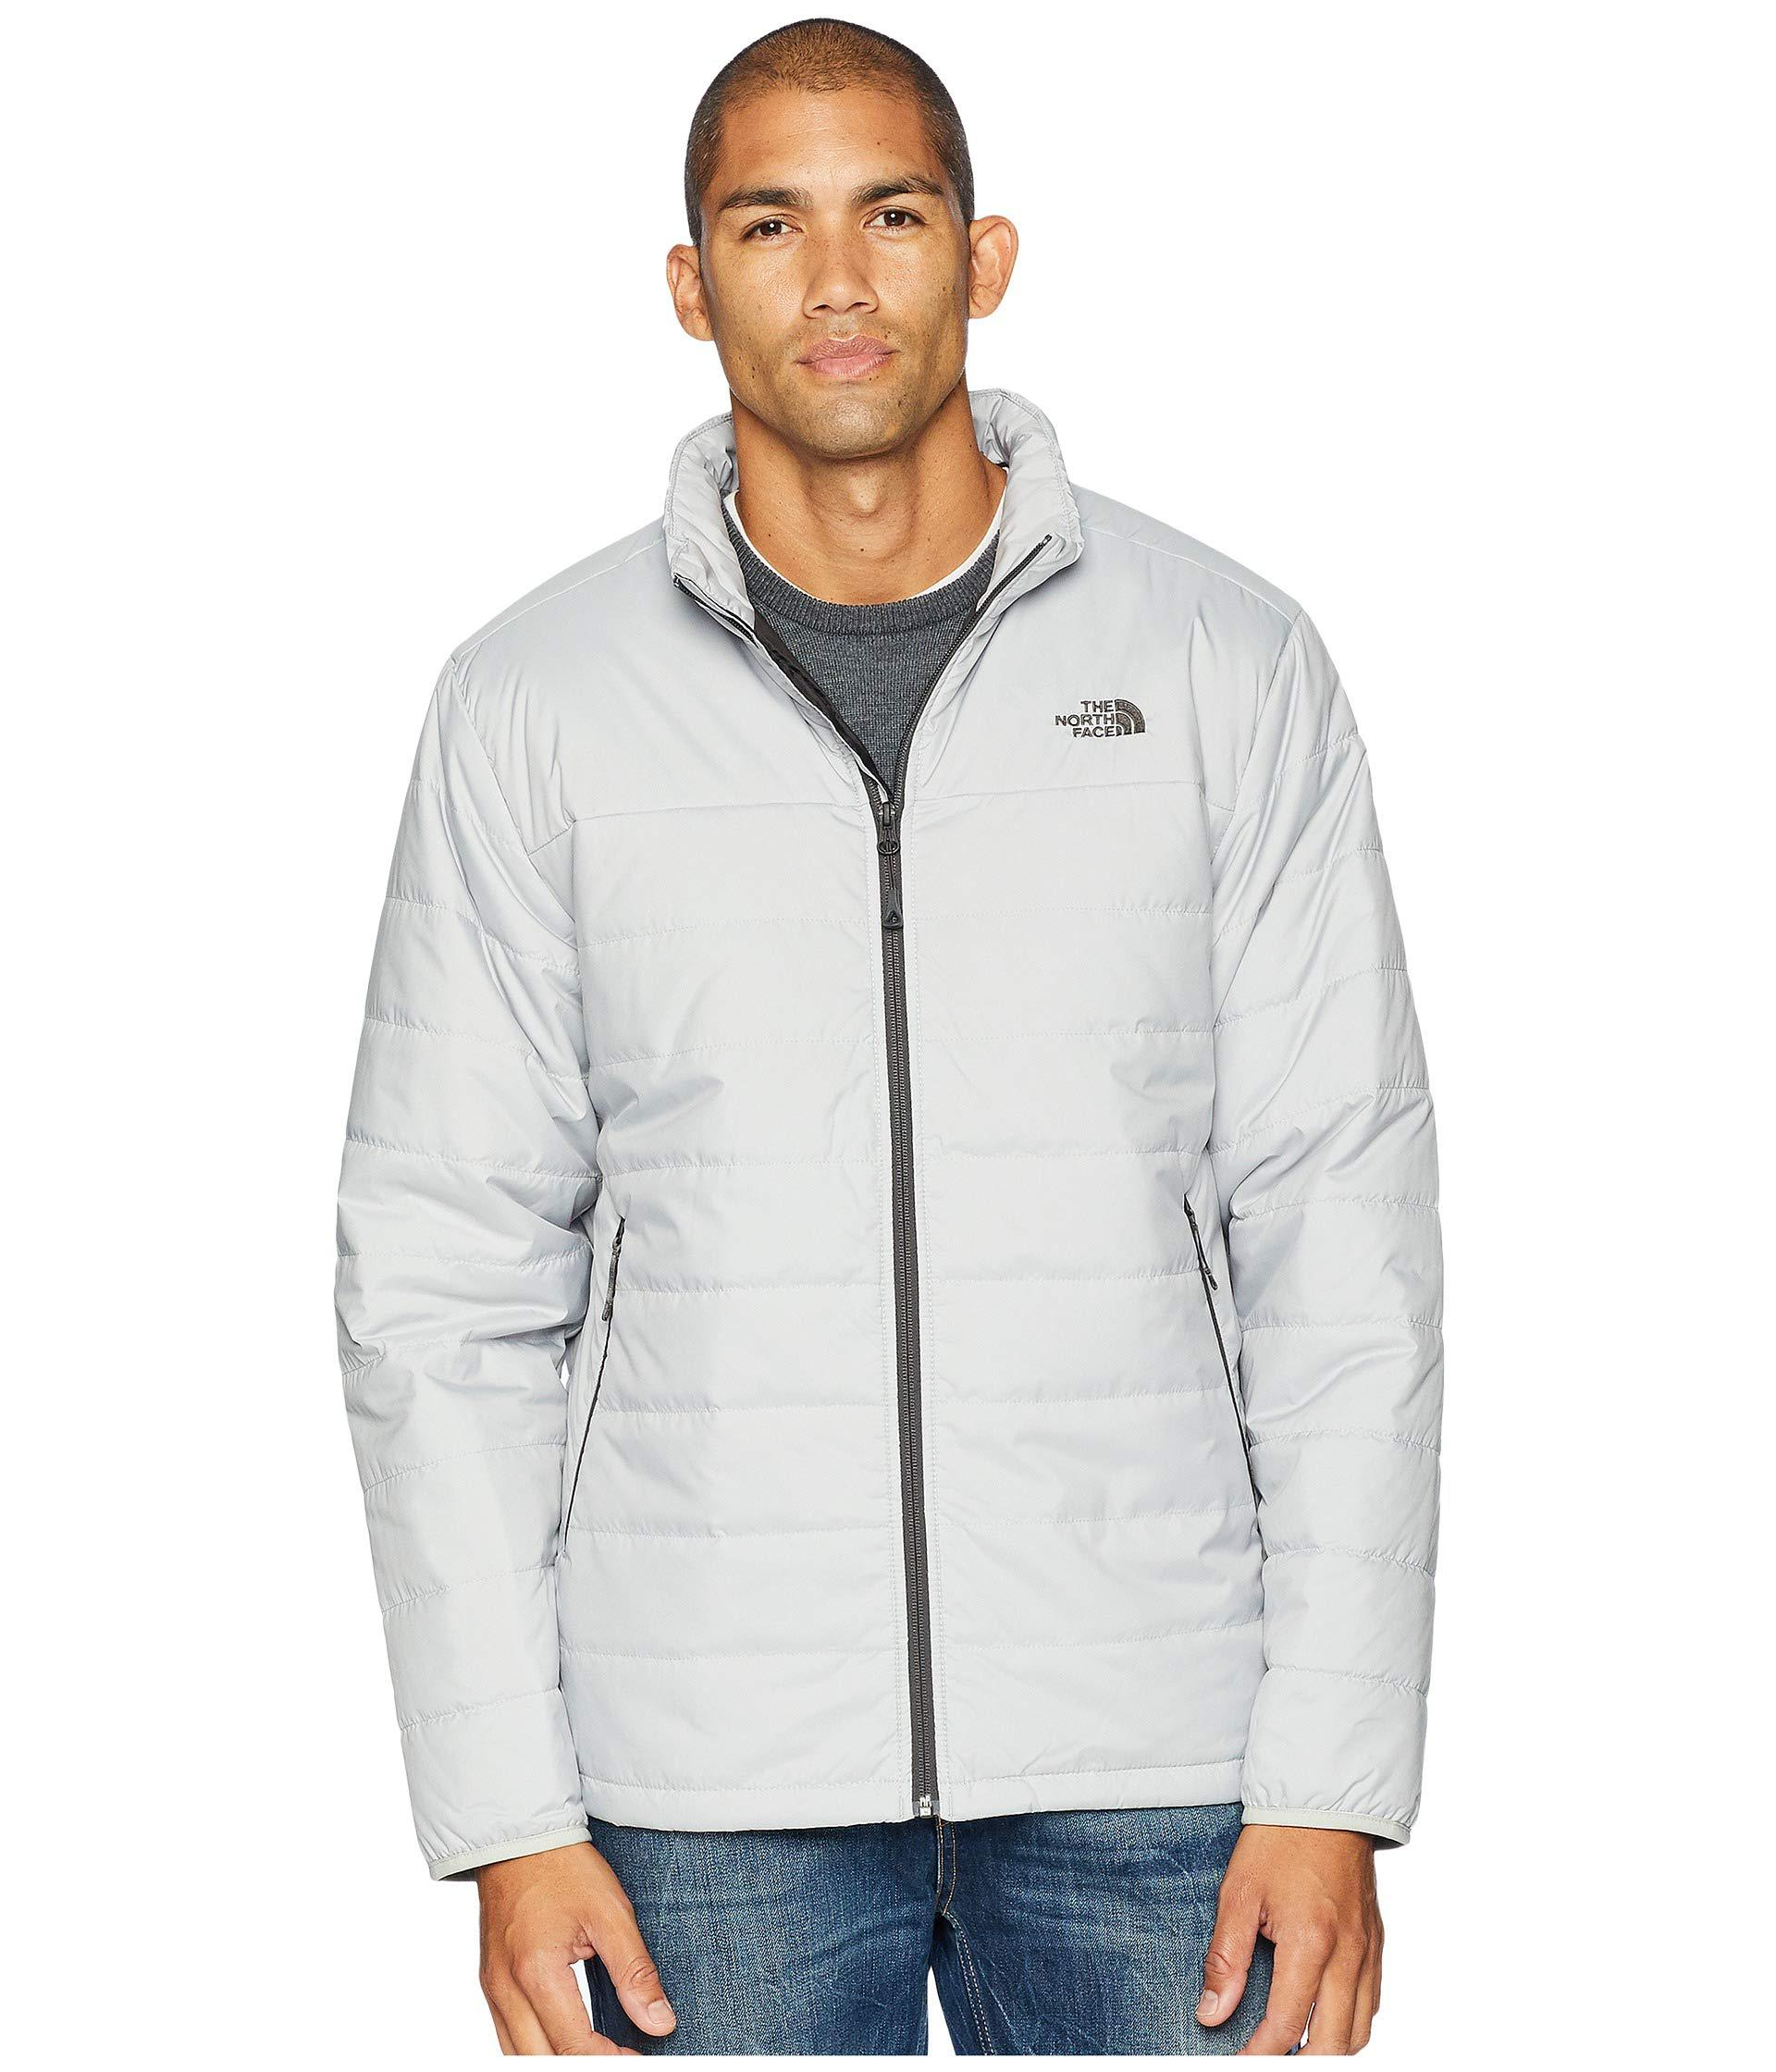 Lyst - The North Face Bombay Jacket (beech Green) Men s Jacket in ... 32c7b02cd